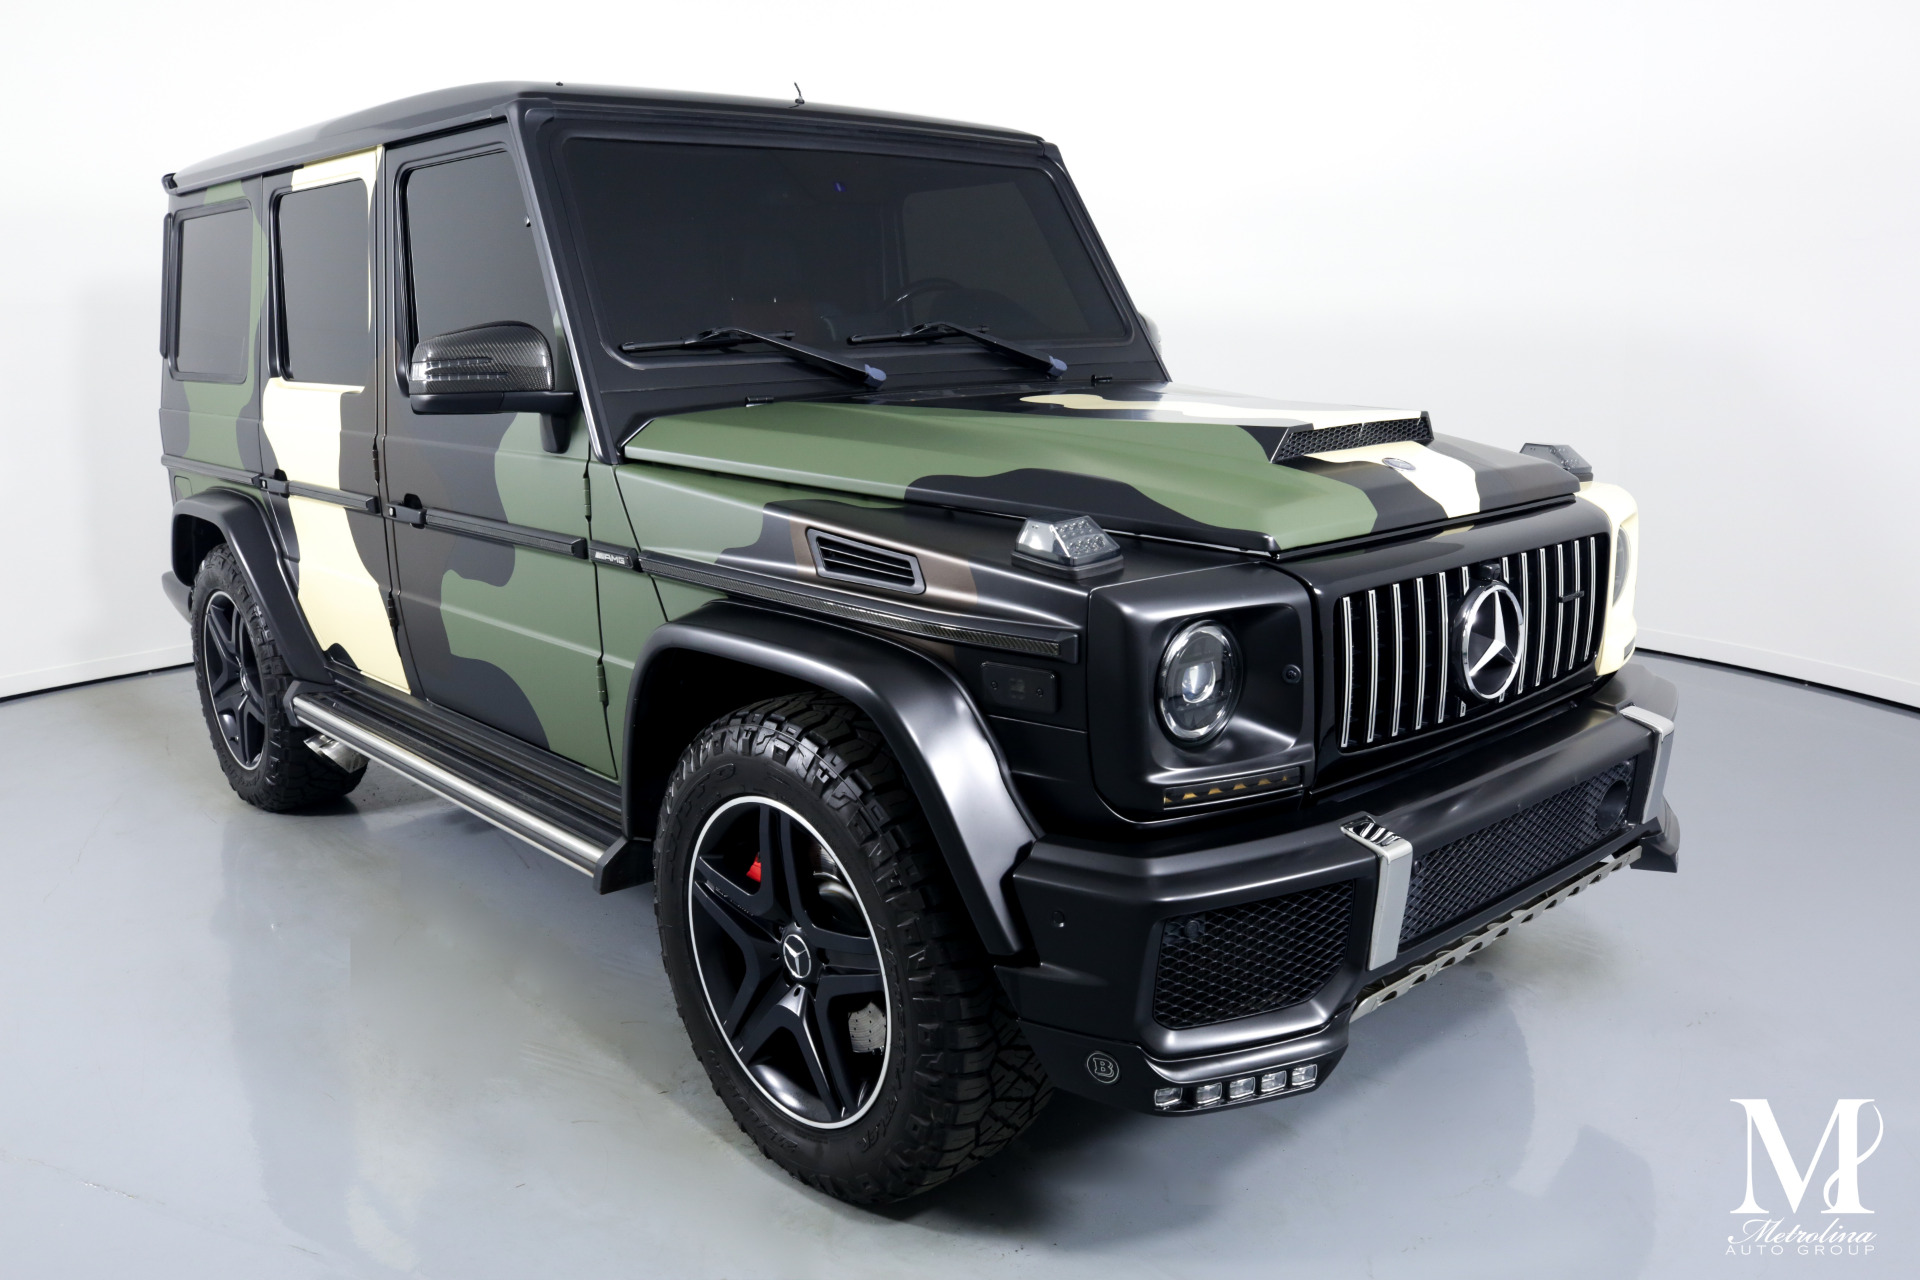 Used 2013 Mercedes-Benz G-Class G 63 AMG for sale $84,996 at Metrolina Auto Group in Charlotte NC 28217 - 2